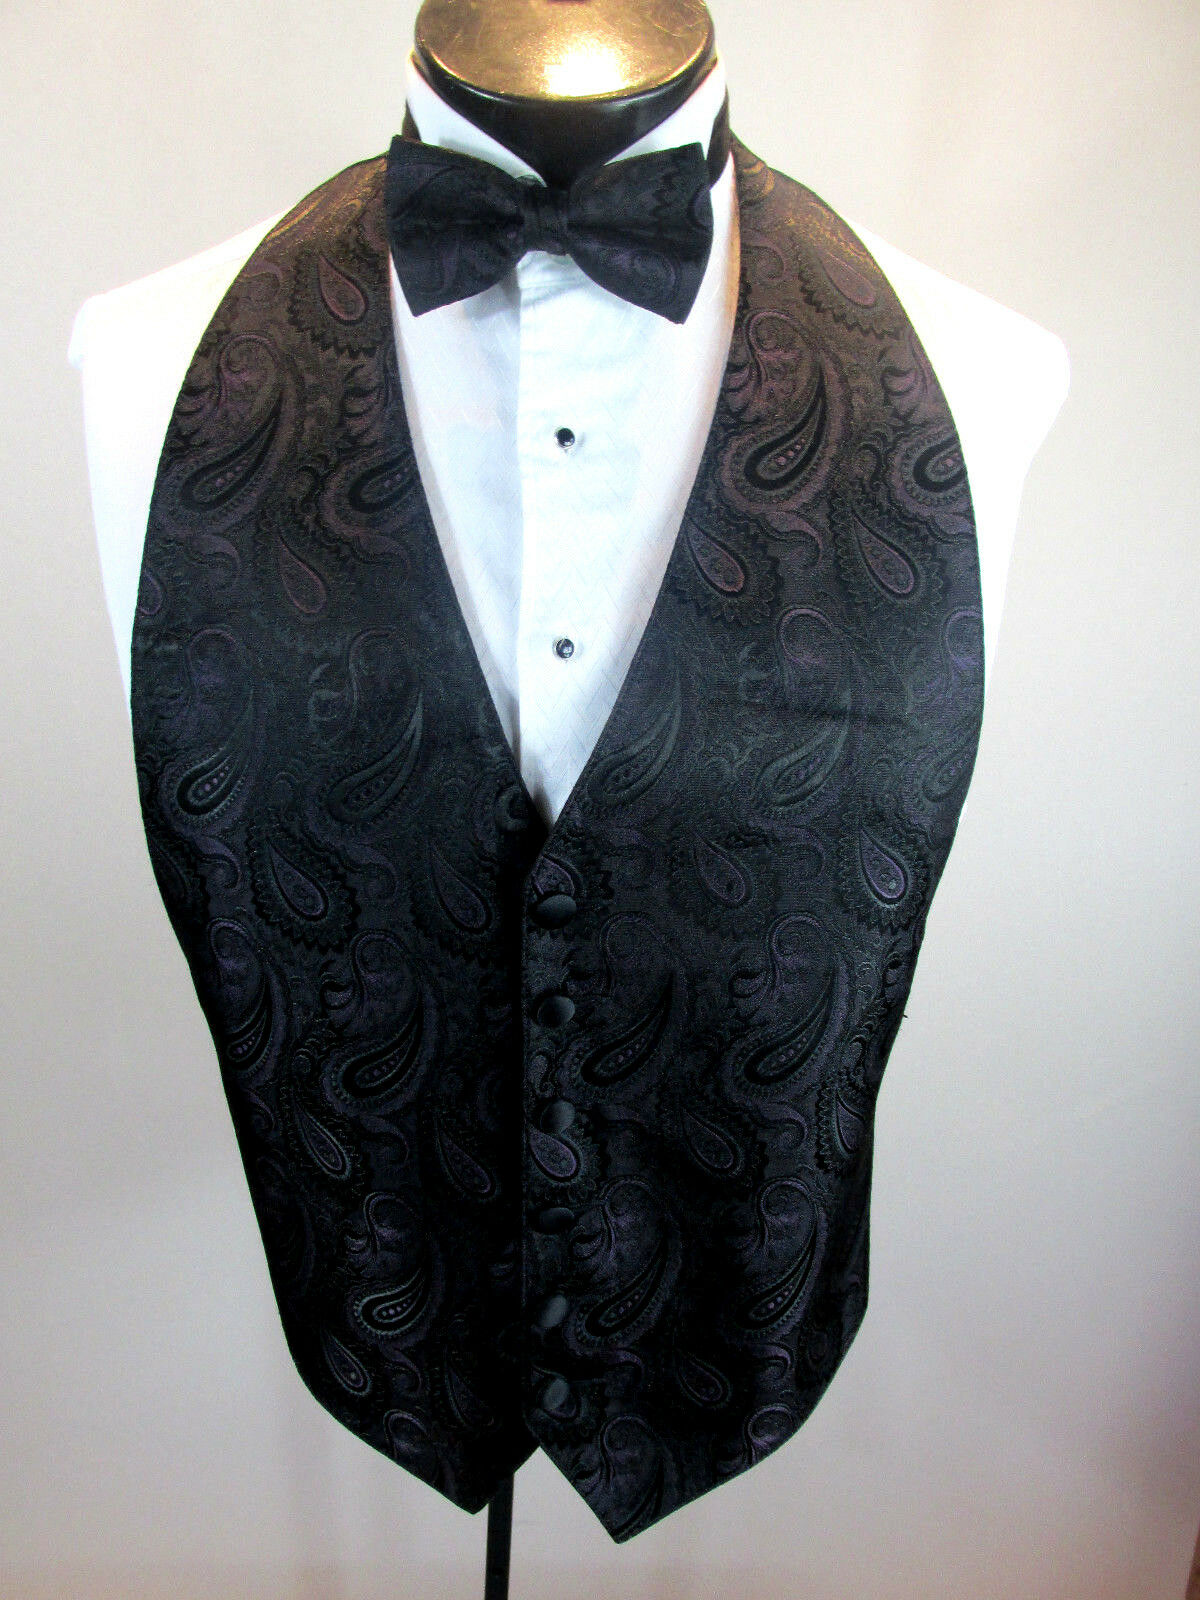 Mens Formal Vest Black & Wine Paisley Design Matching Tie Included OSFA B2